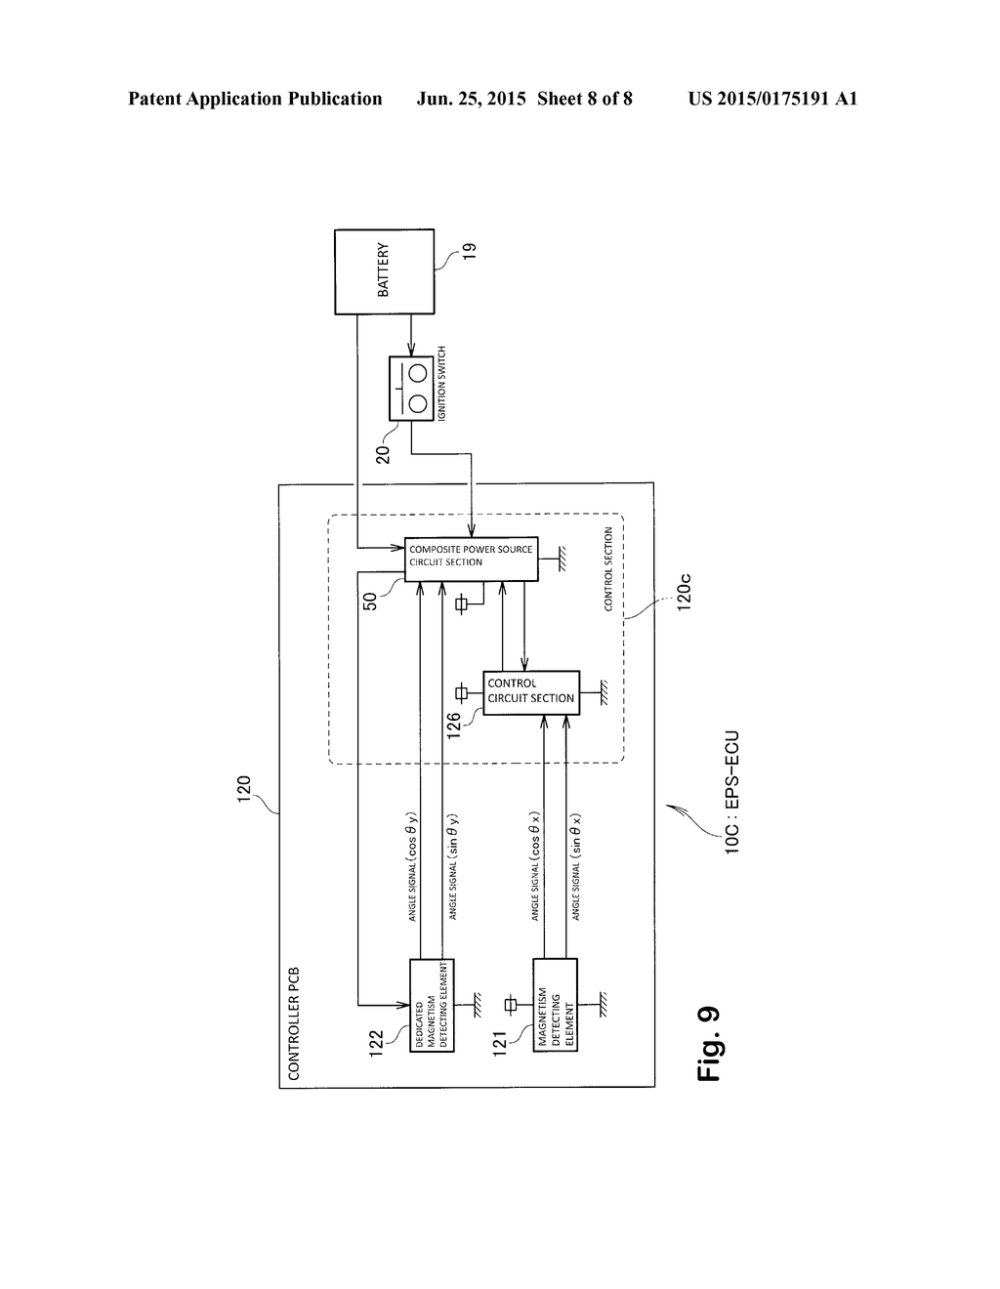 medium resolution of electronic control unit for electric power steering diagram schematic and image 09